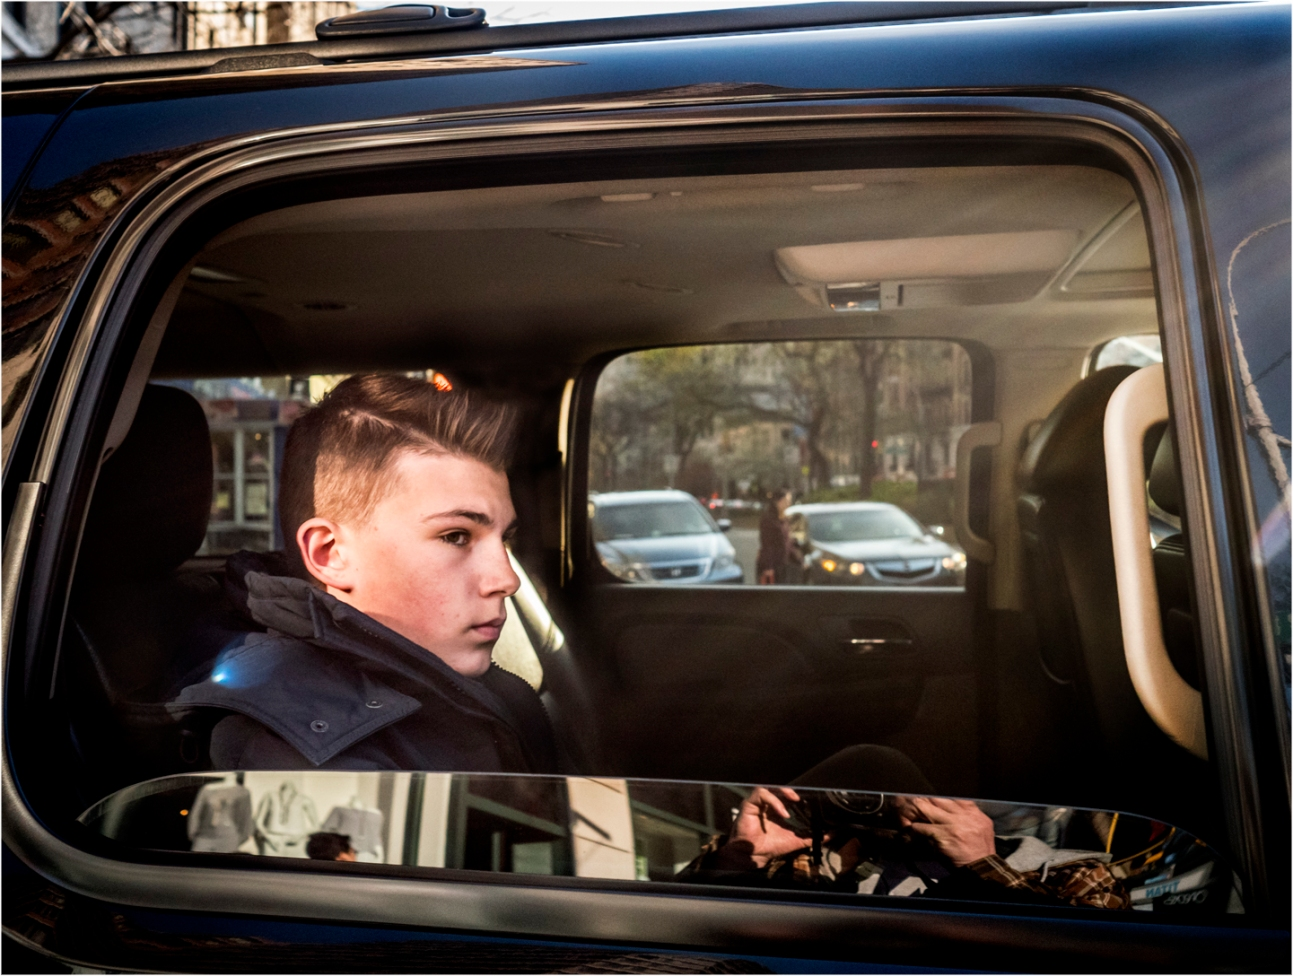 **TEEN-Boy-Escalade-Window-SUV copy